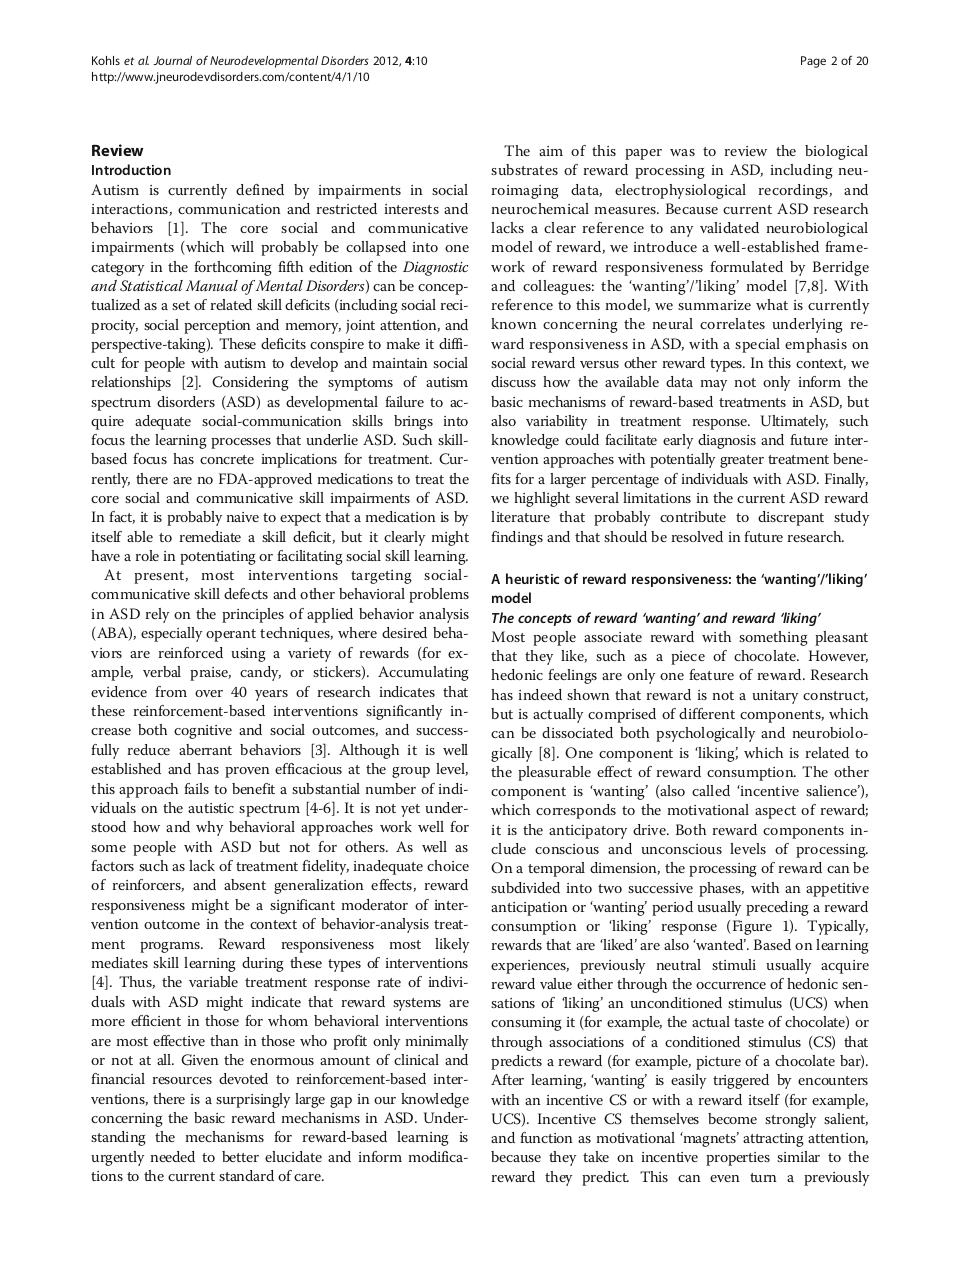 social wanting dysfunction autism asd.pdf - page 2/20